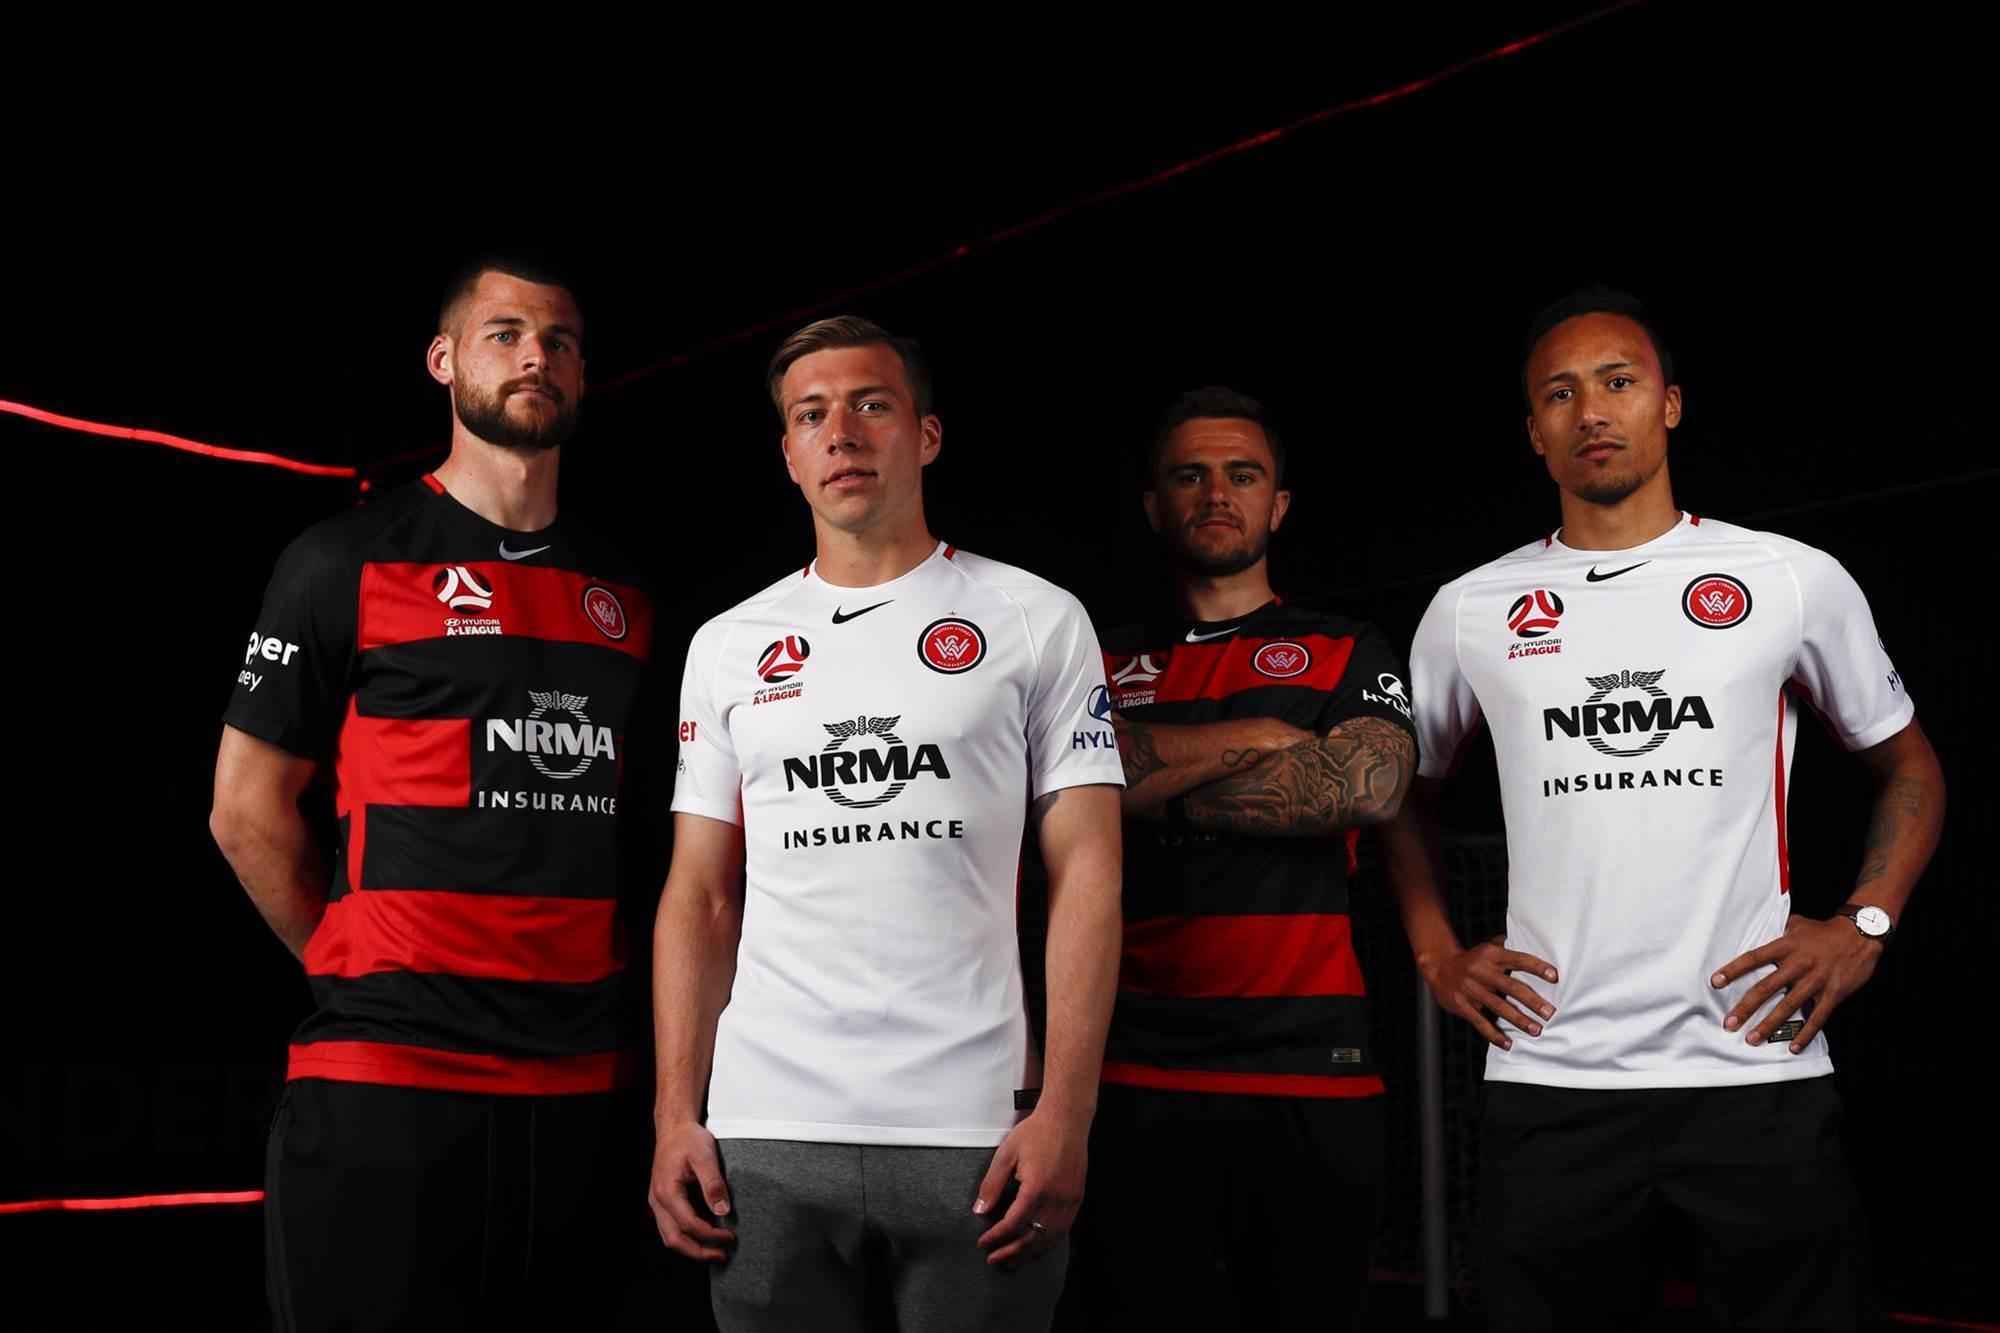 Wanderers confirm new Nike deal